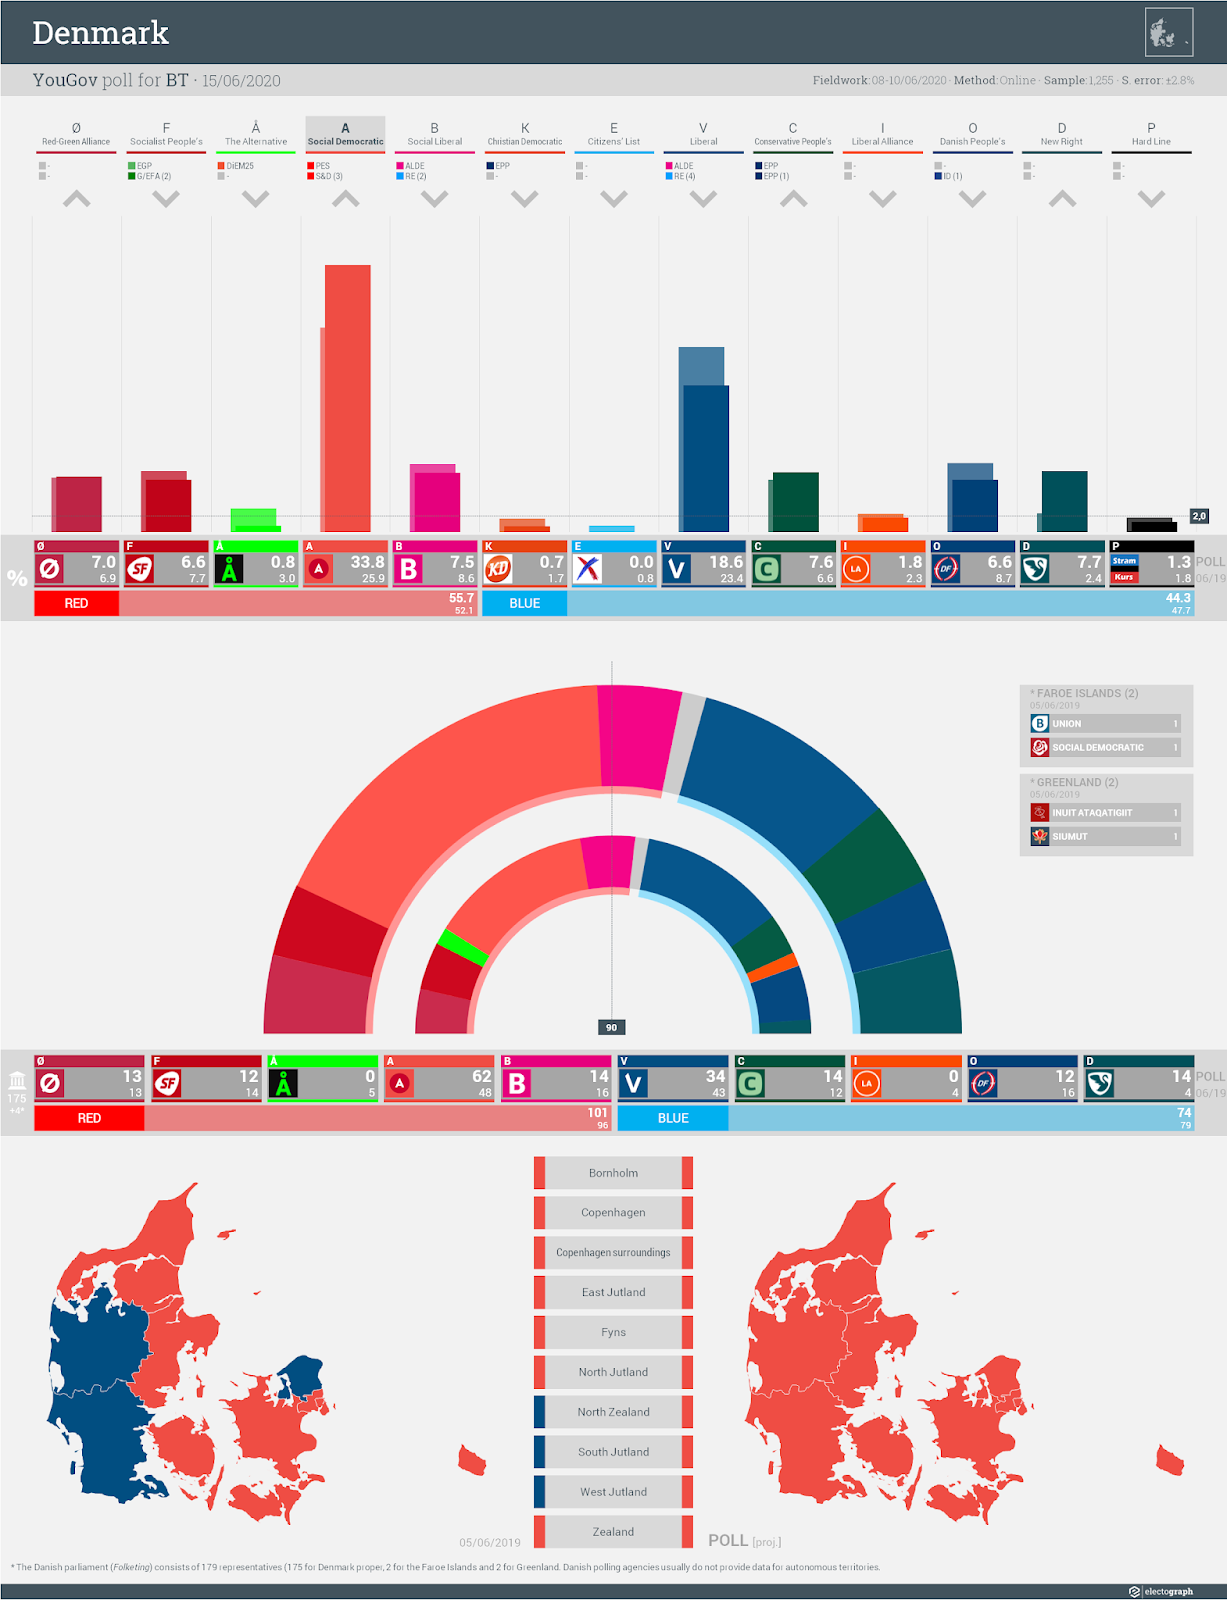 DENMARK: YouGov poll chart for BT, 15 June 2020